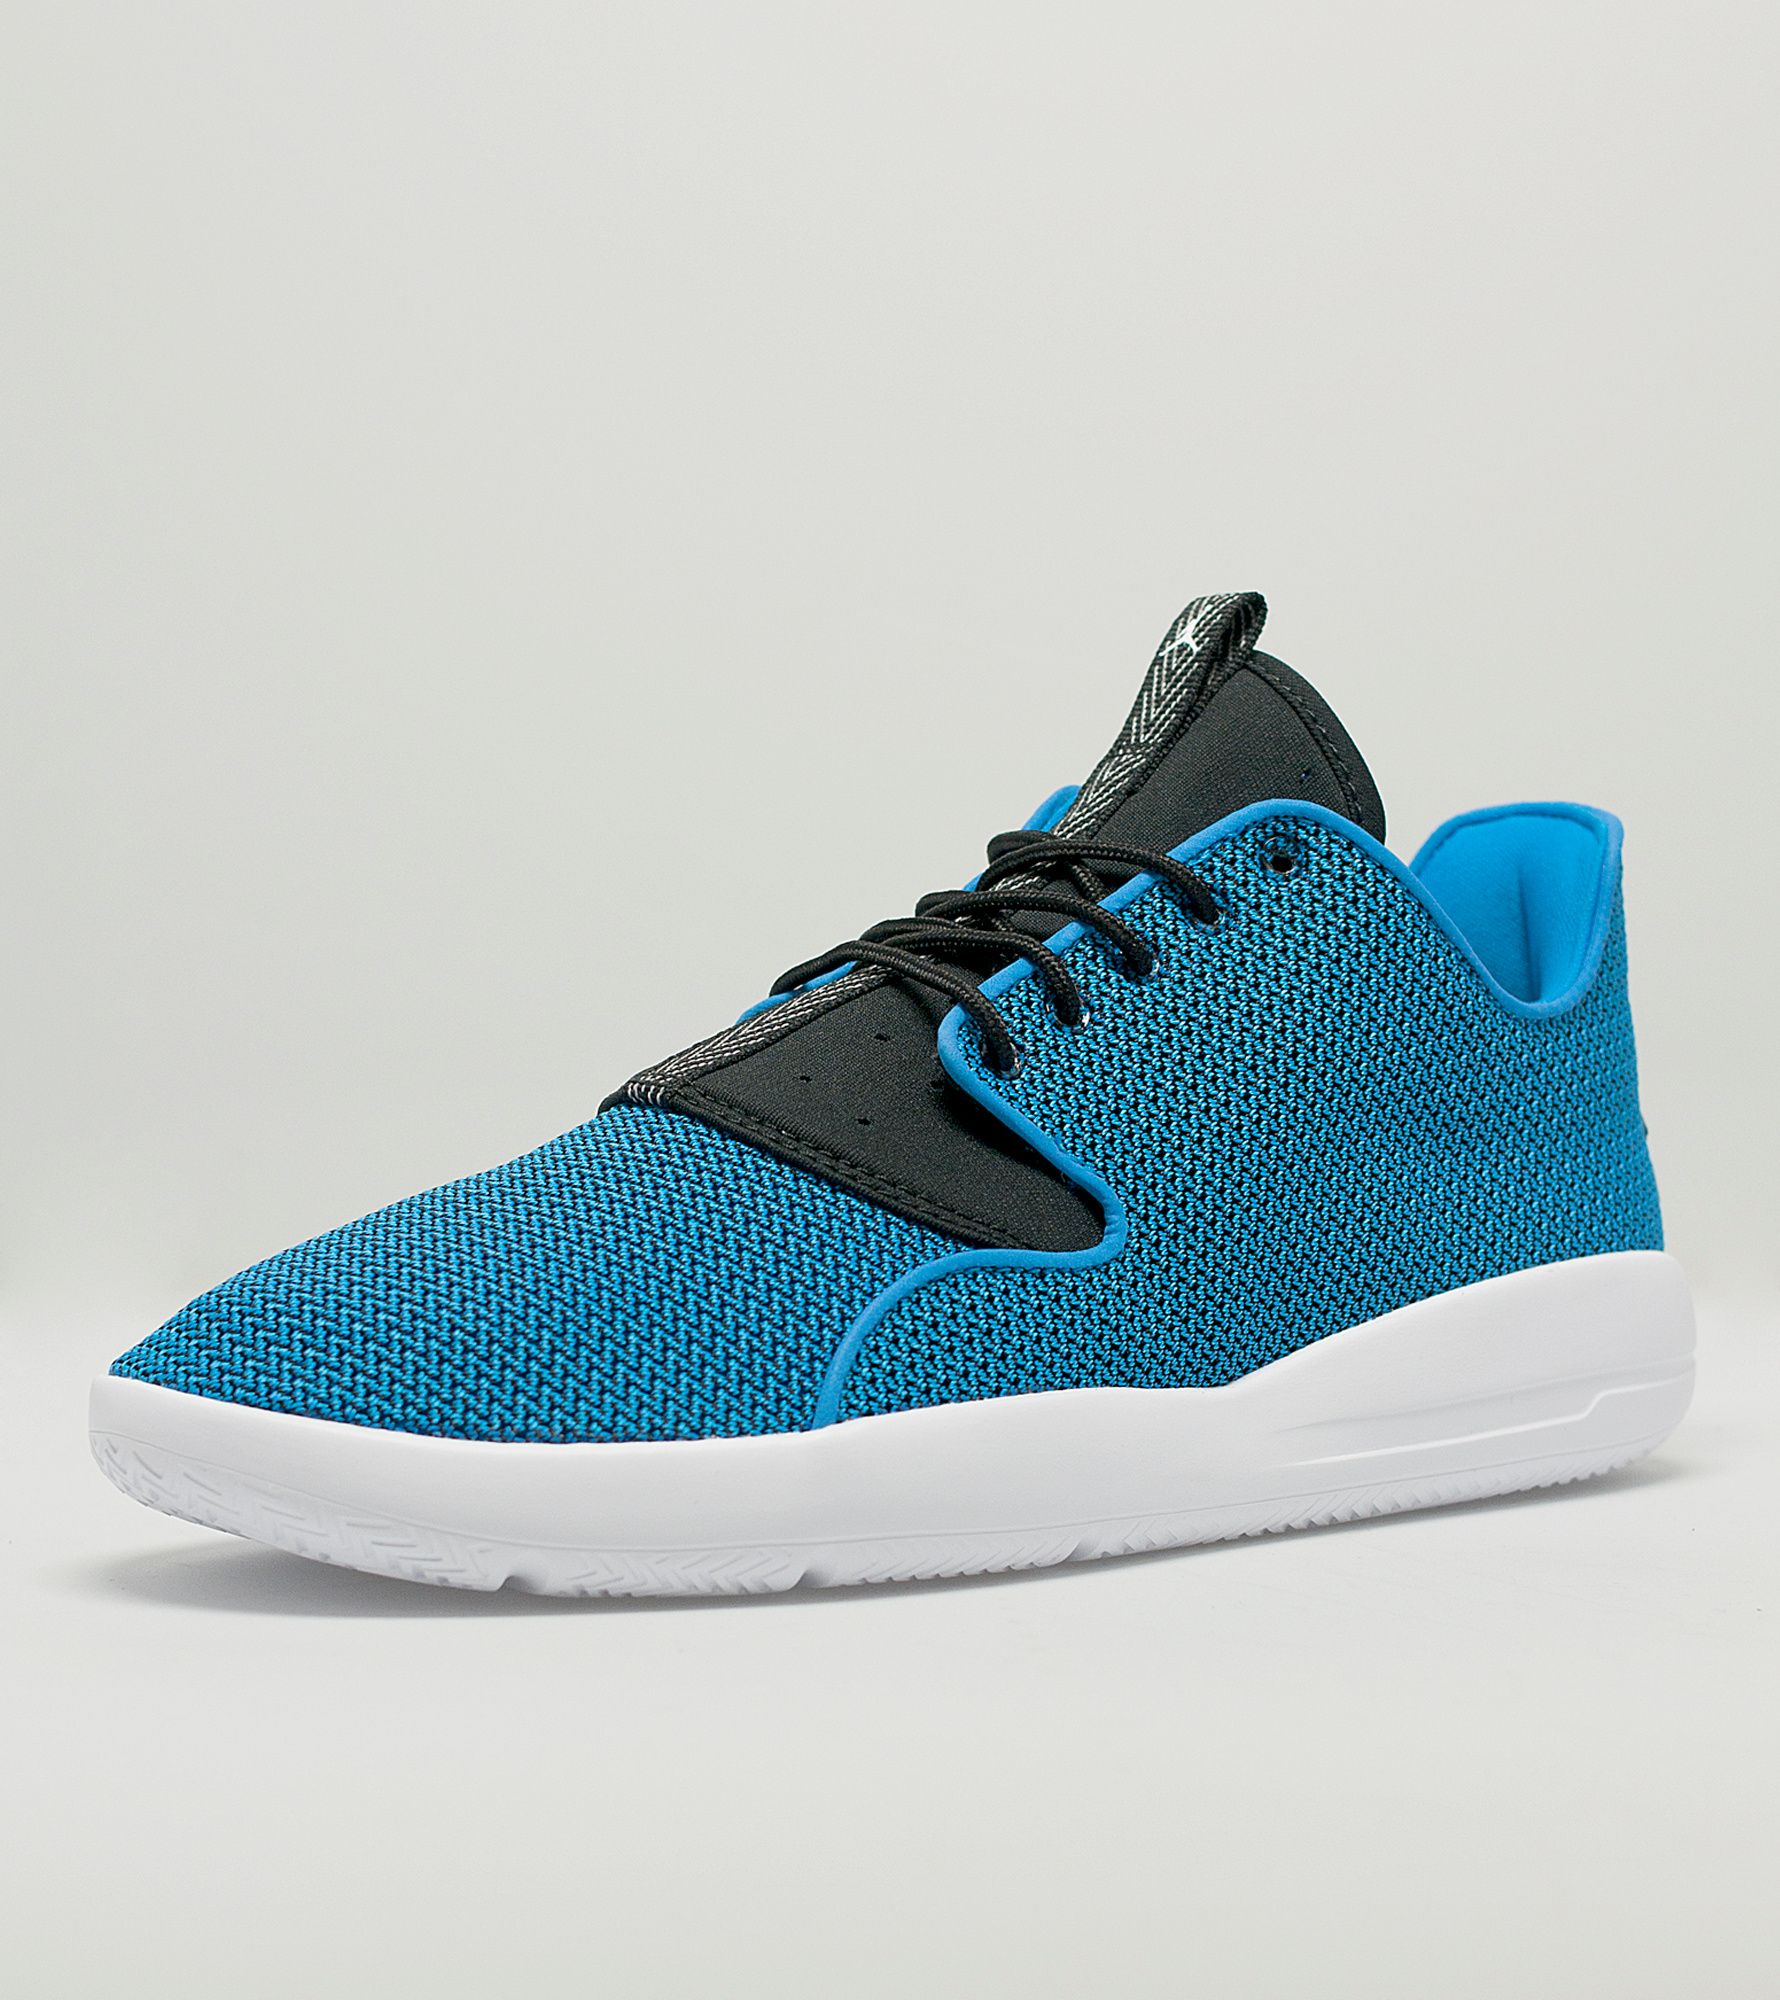 sneakers for cheap 9fa2a 03e7a cheap jordan eclipse size d5b3a e3955